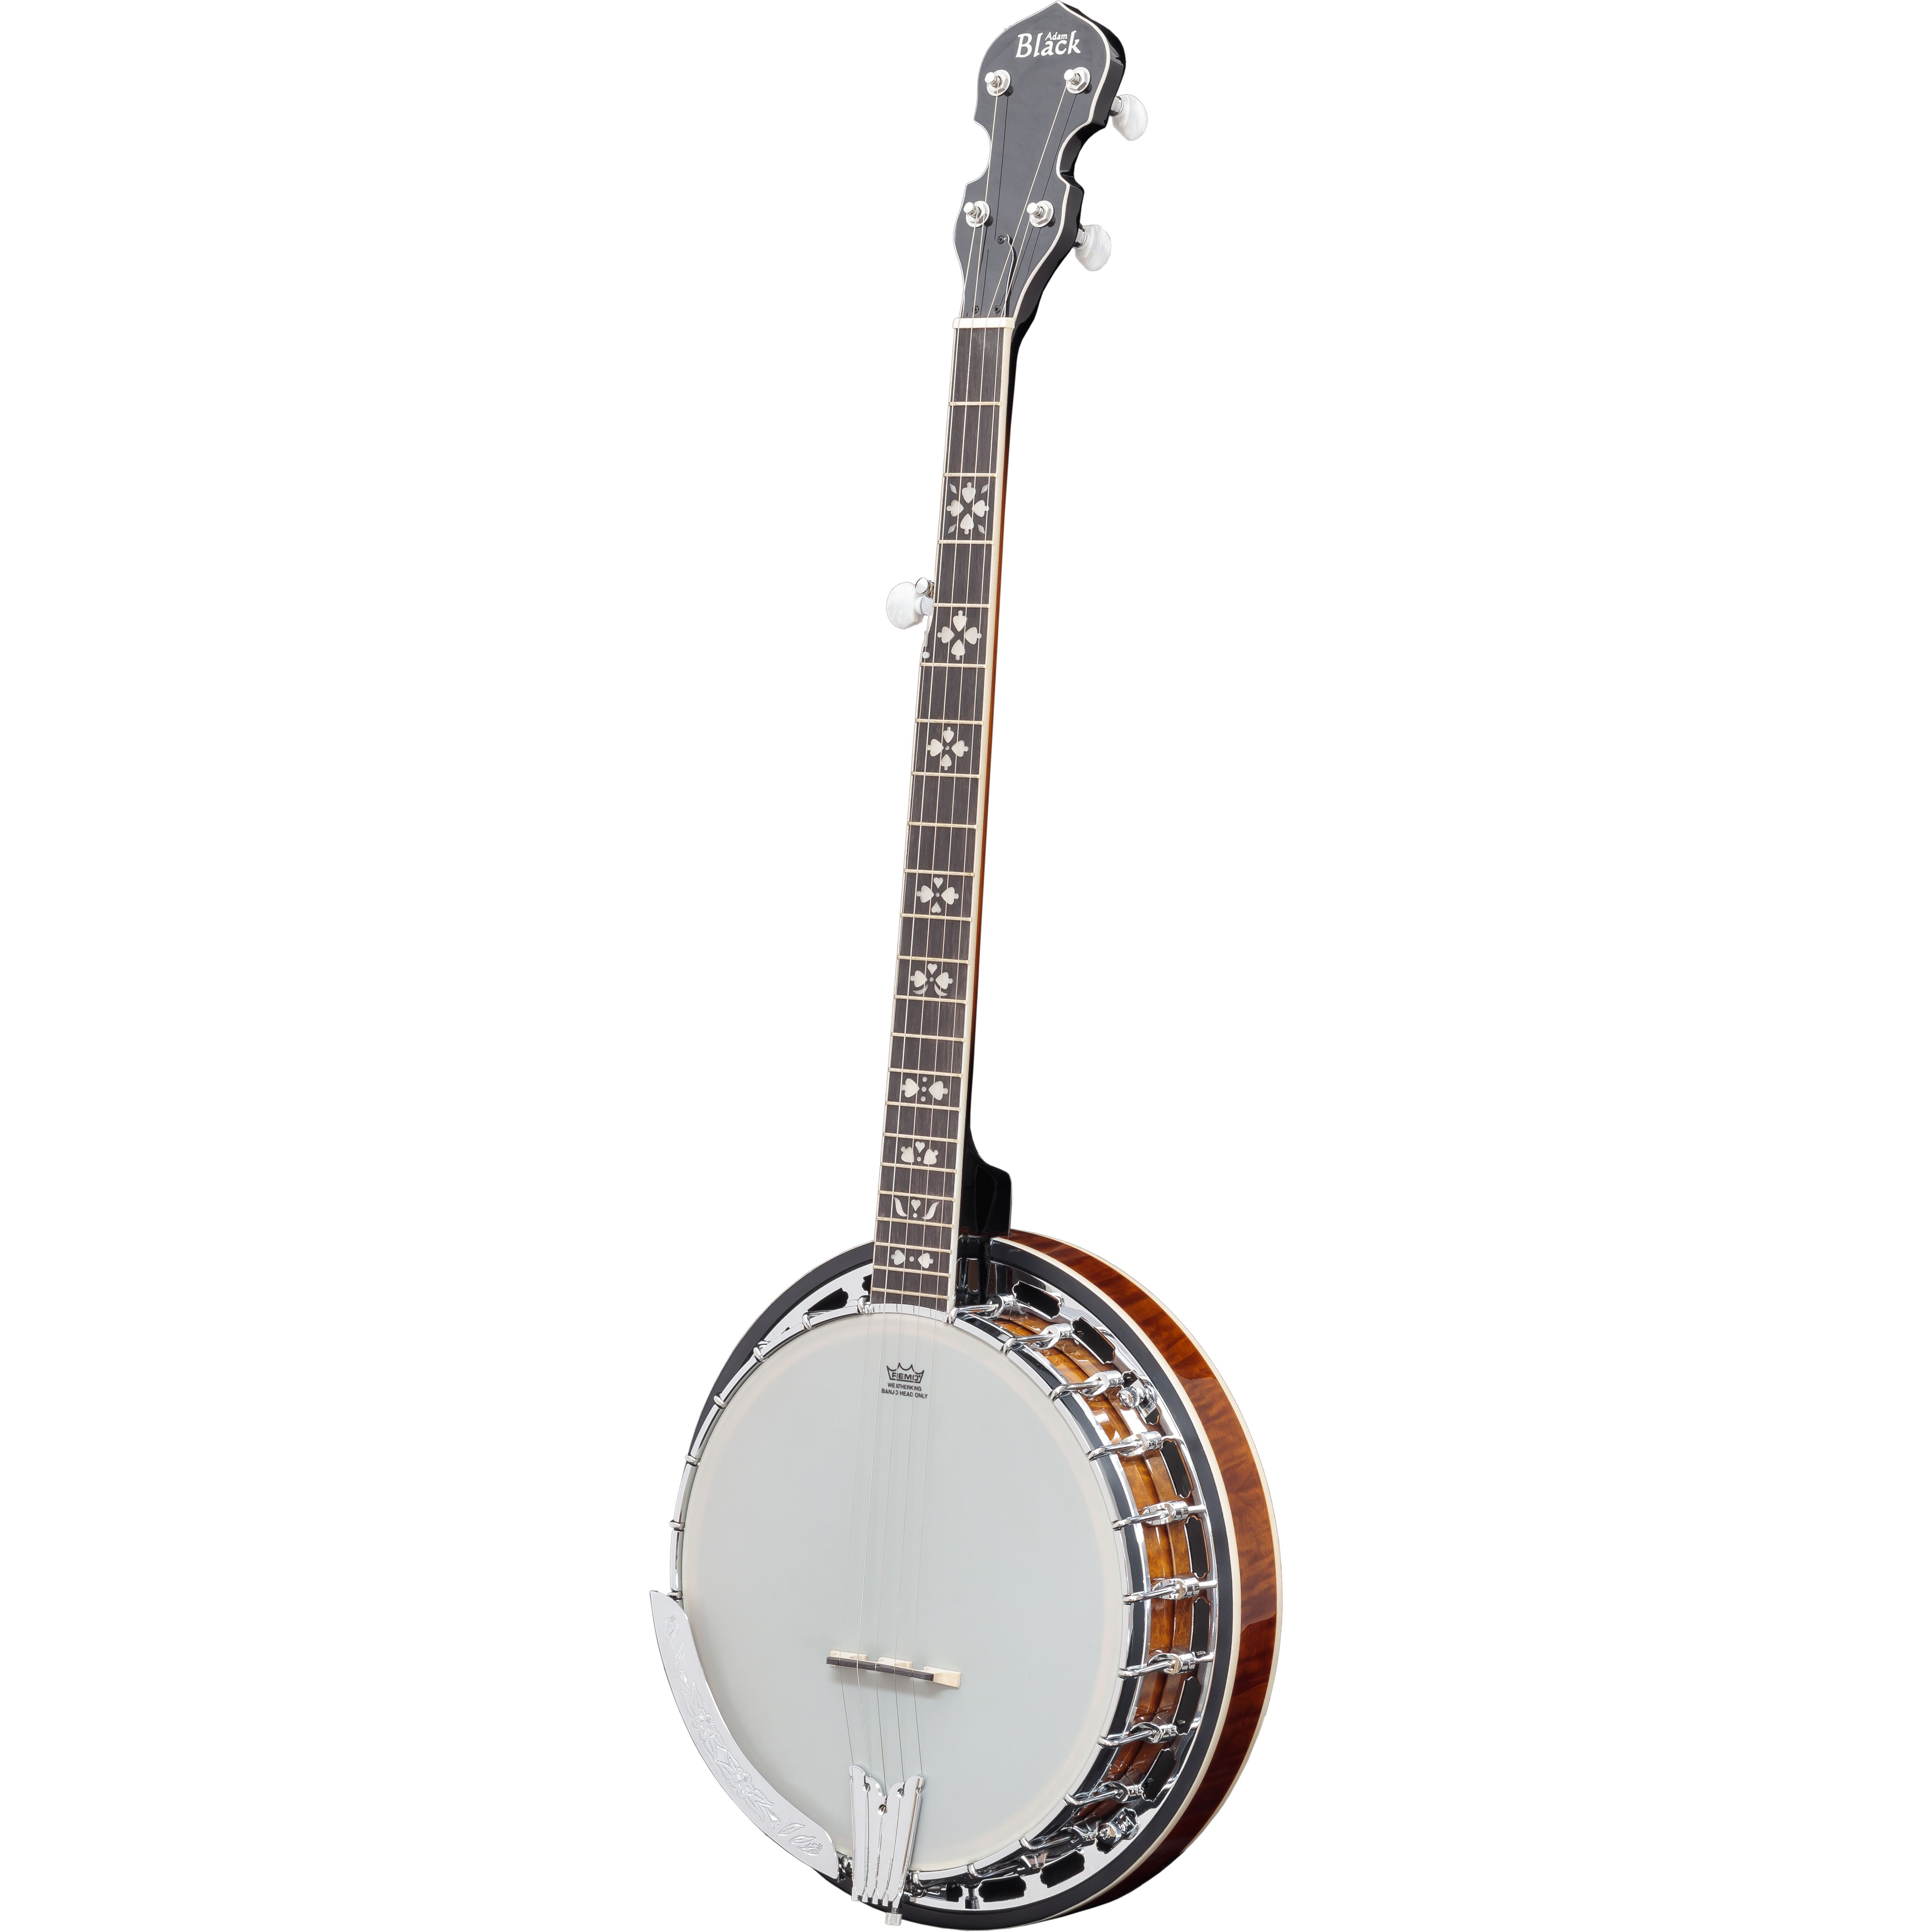 Adam Black BJ-04 Deluxe 5-String Banjo with Gigbag - Vintage Sunburst